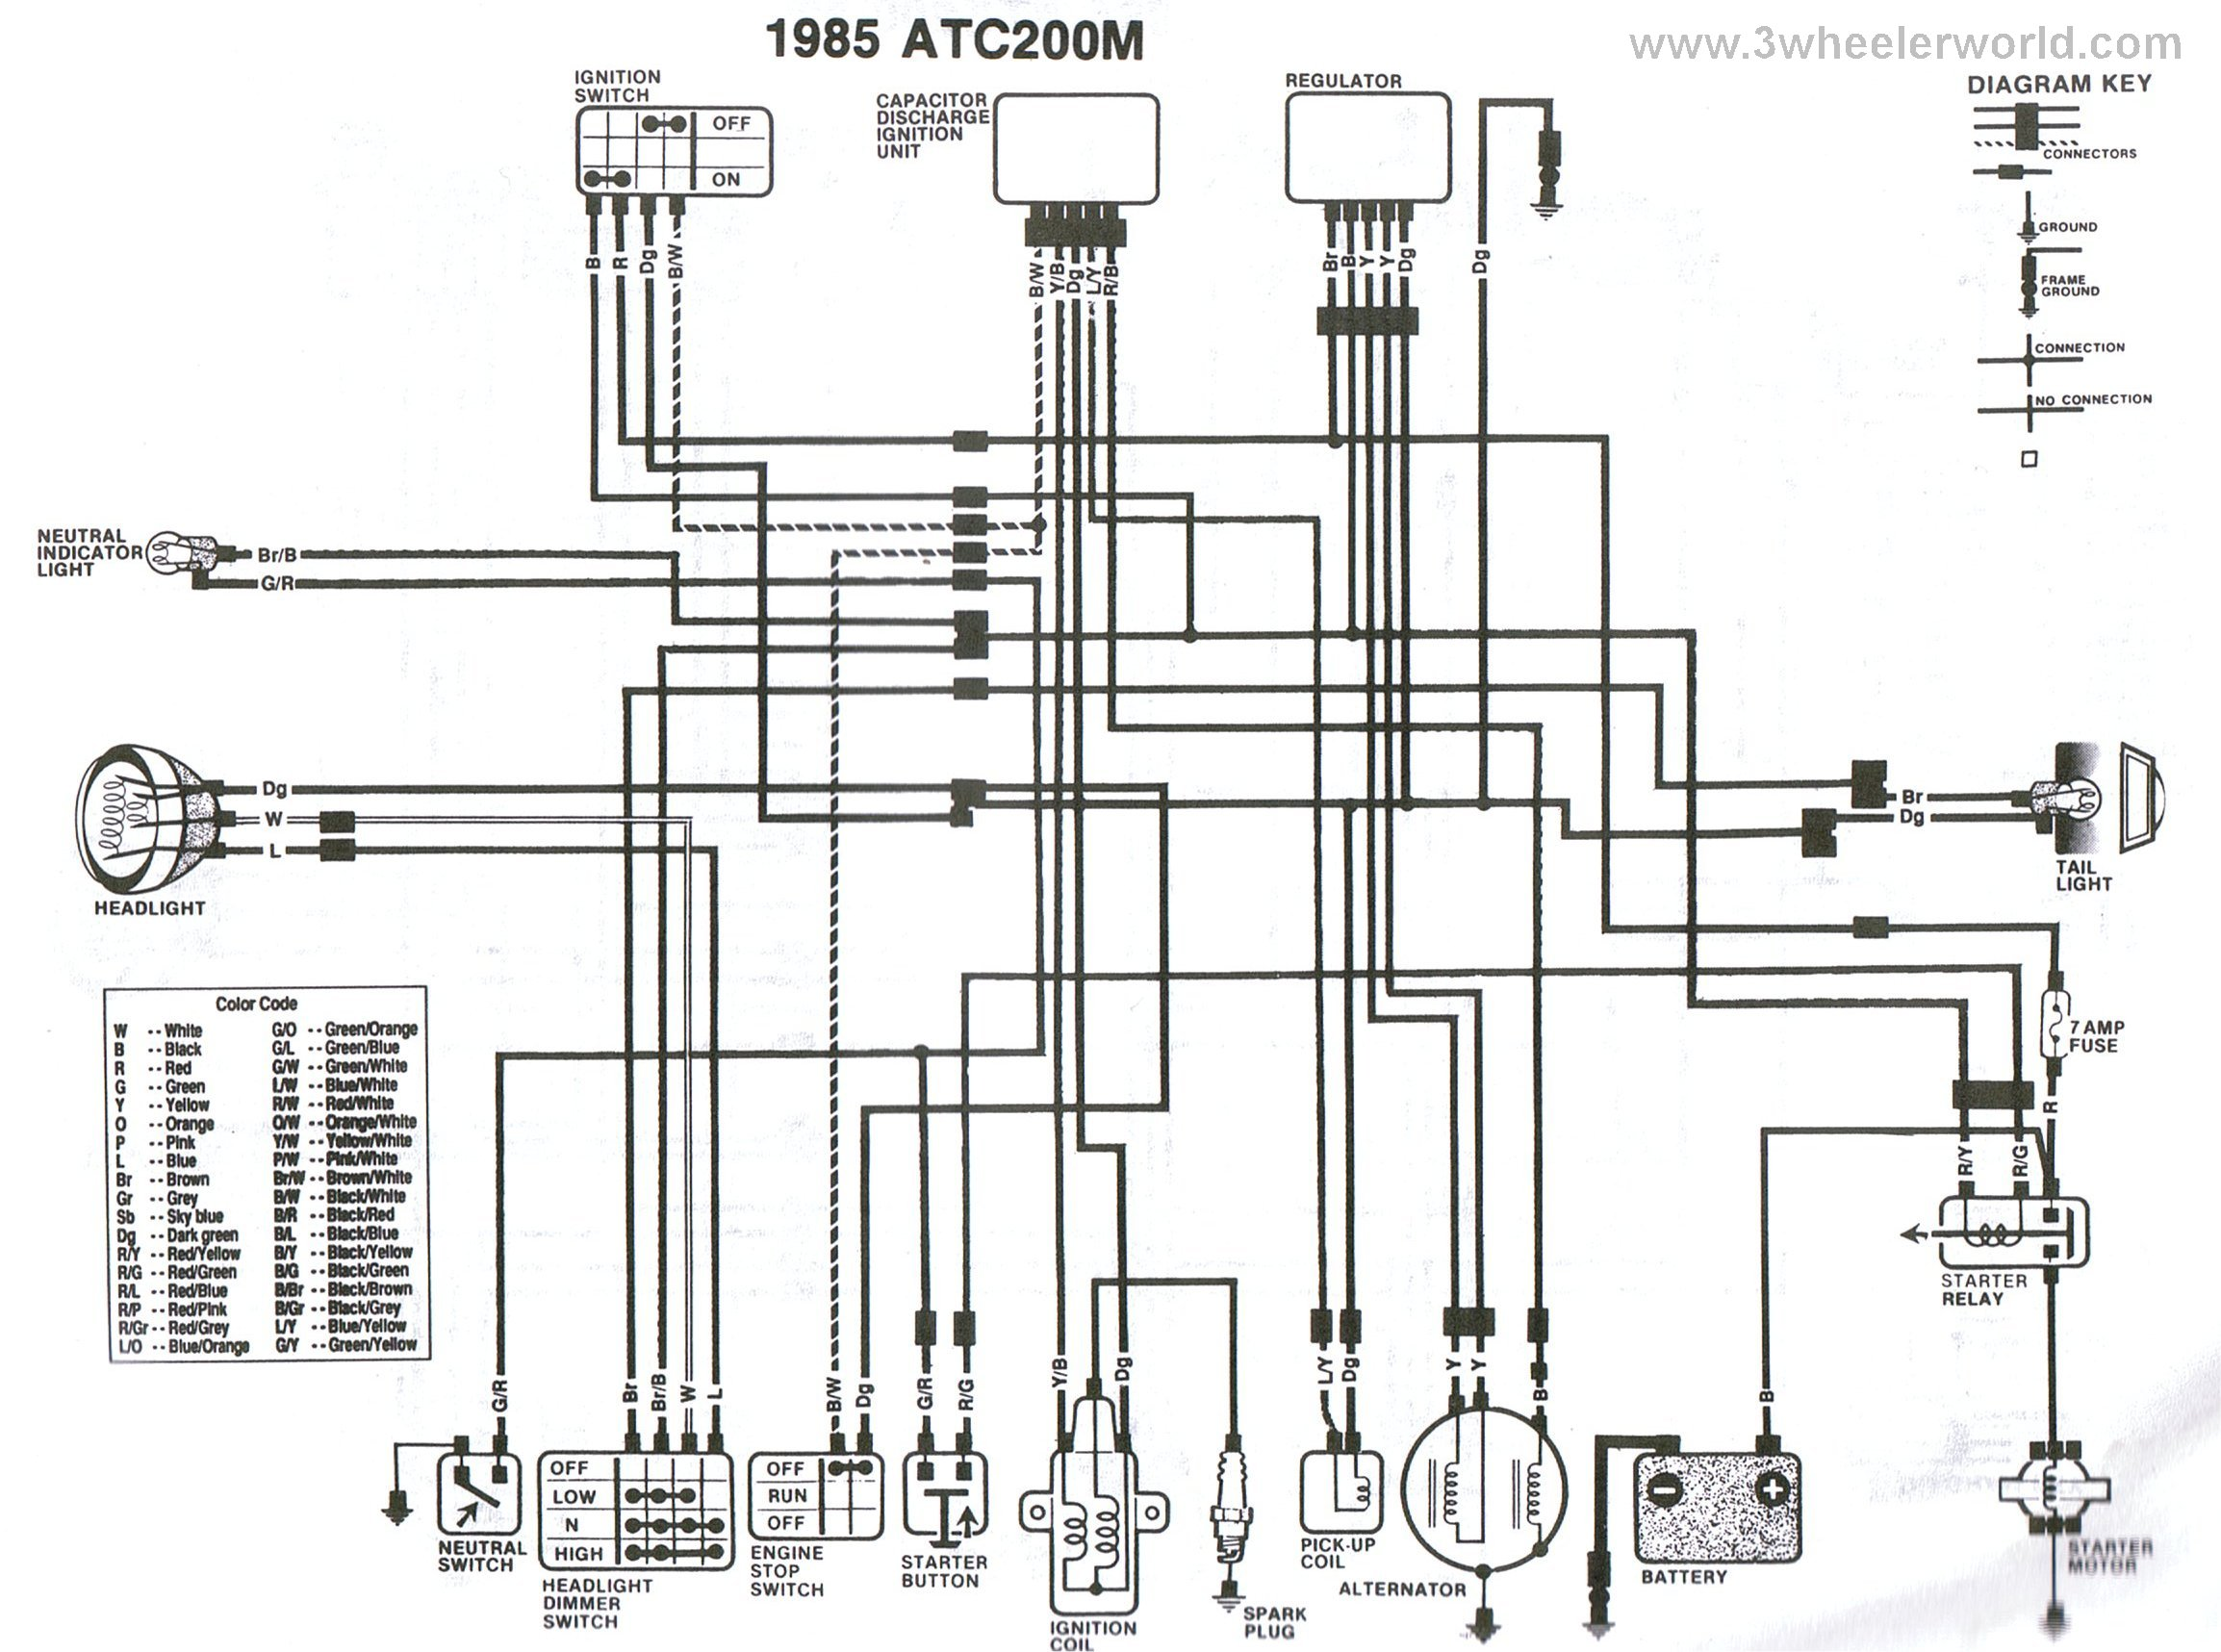 Wiring Diagram 1984 Honda Big Red Wire Data Schema 1987 Yamaha Seca Xj 750 3 Wheeler World Tech Help Diagrams Atc 250